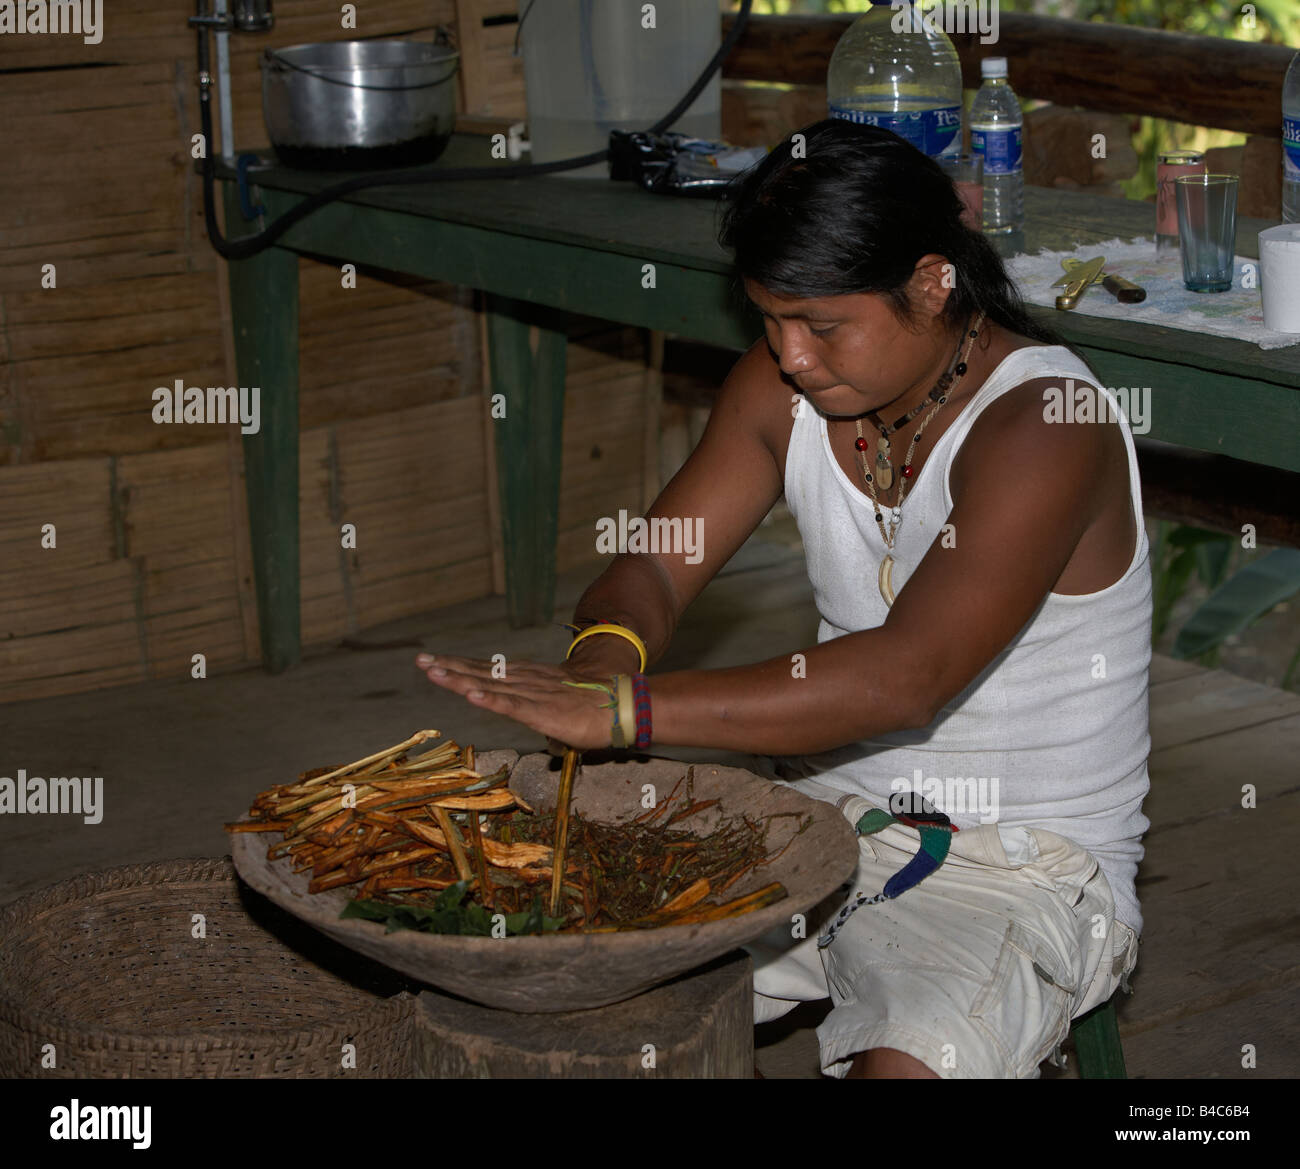 Native preparing herbs for medicine, Amazon Rain Forest, Ecuador - Stock Image